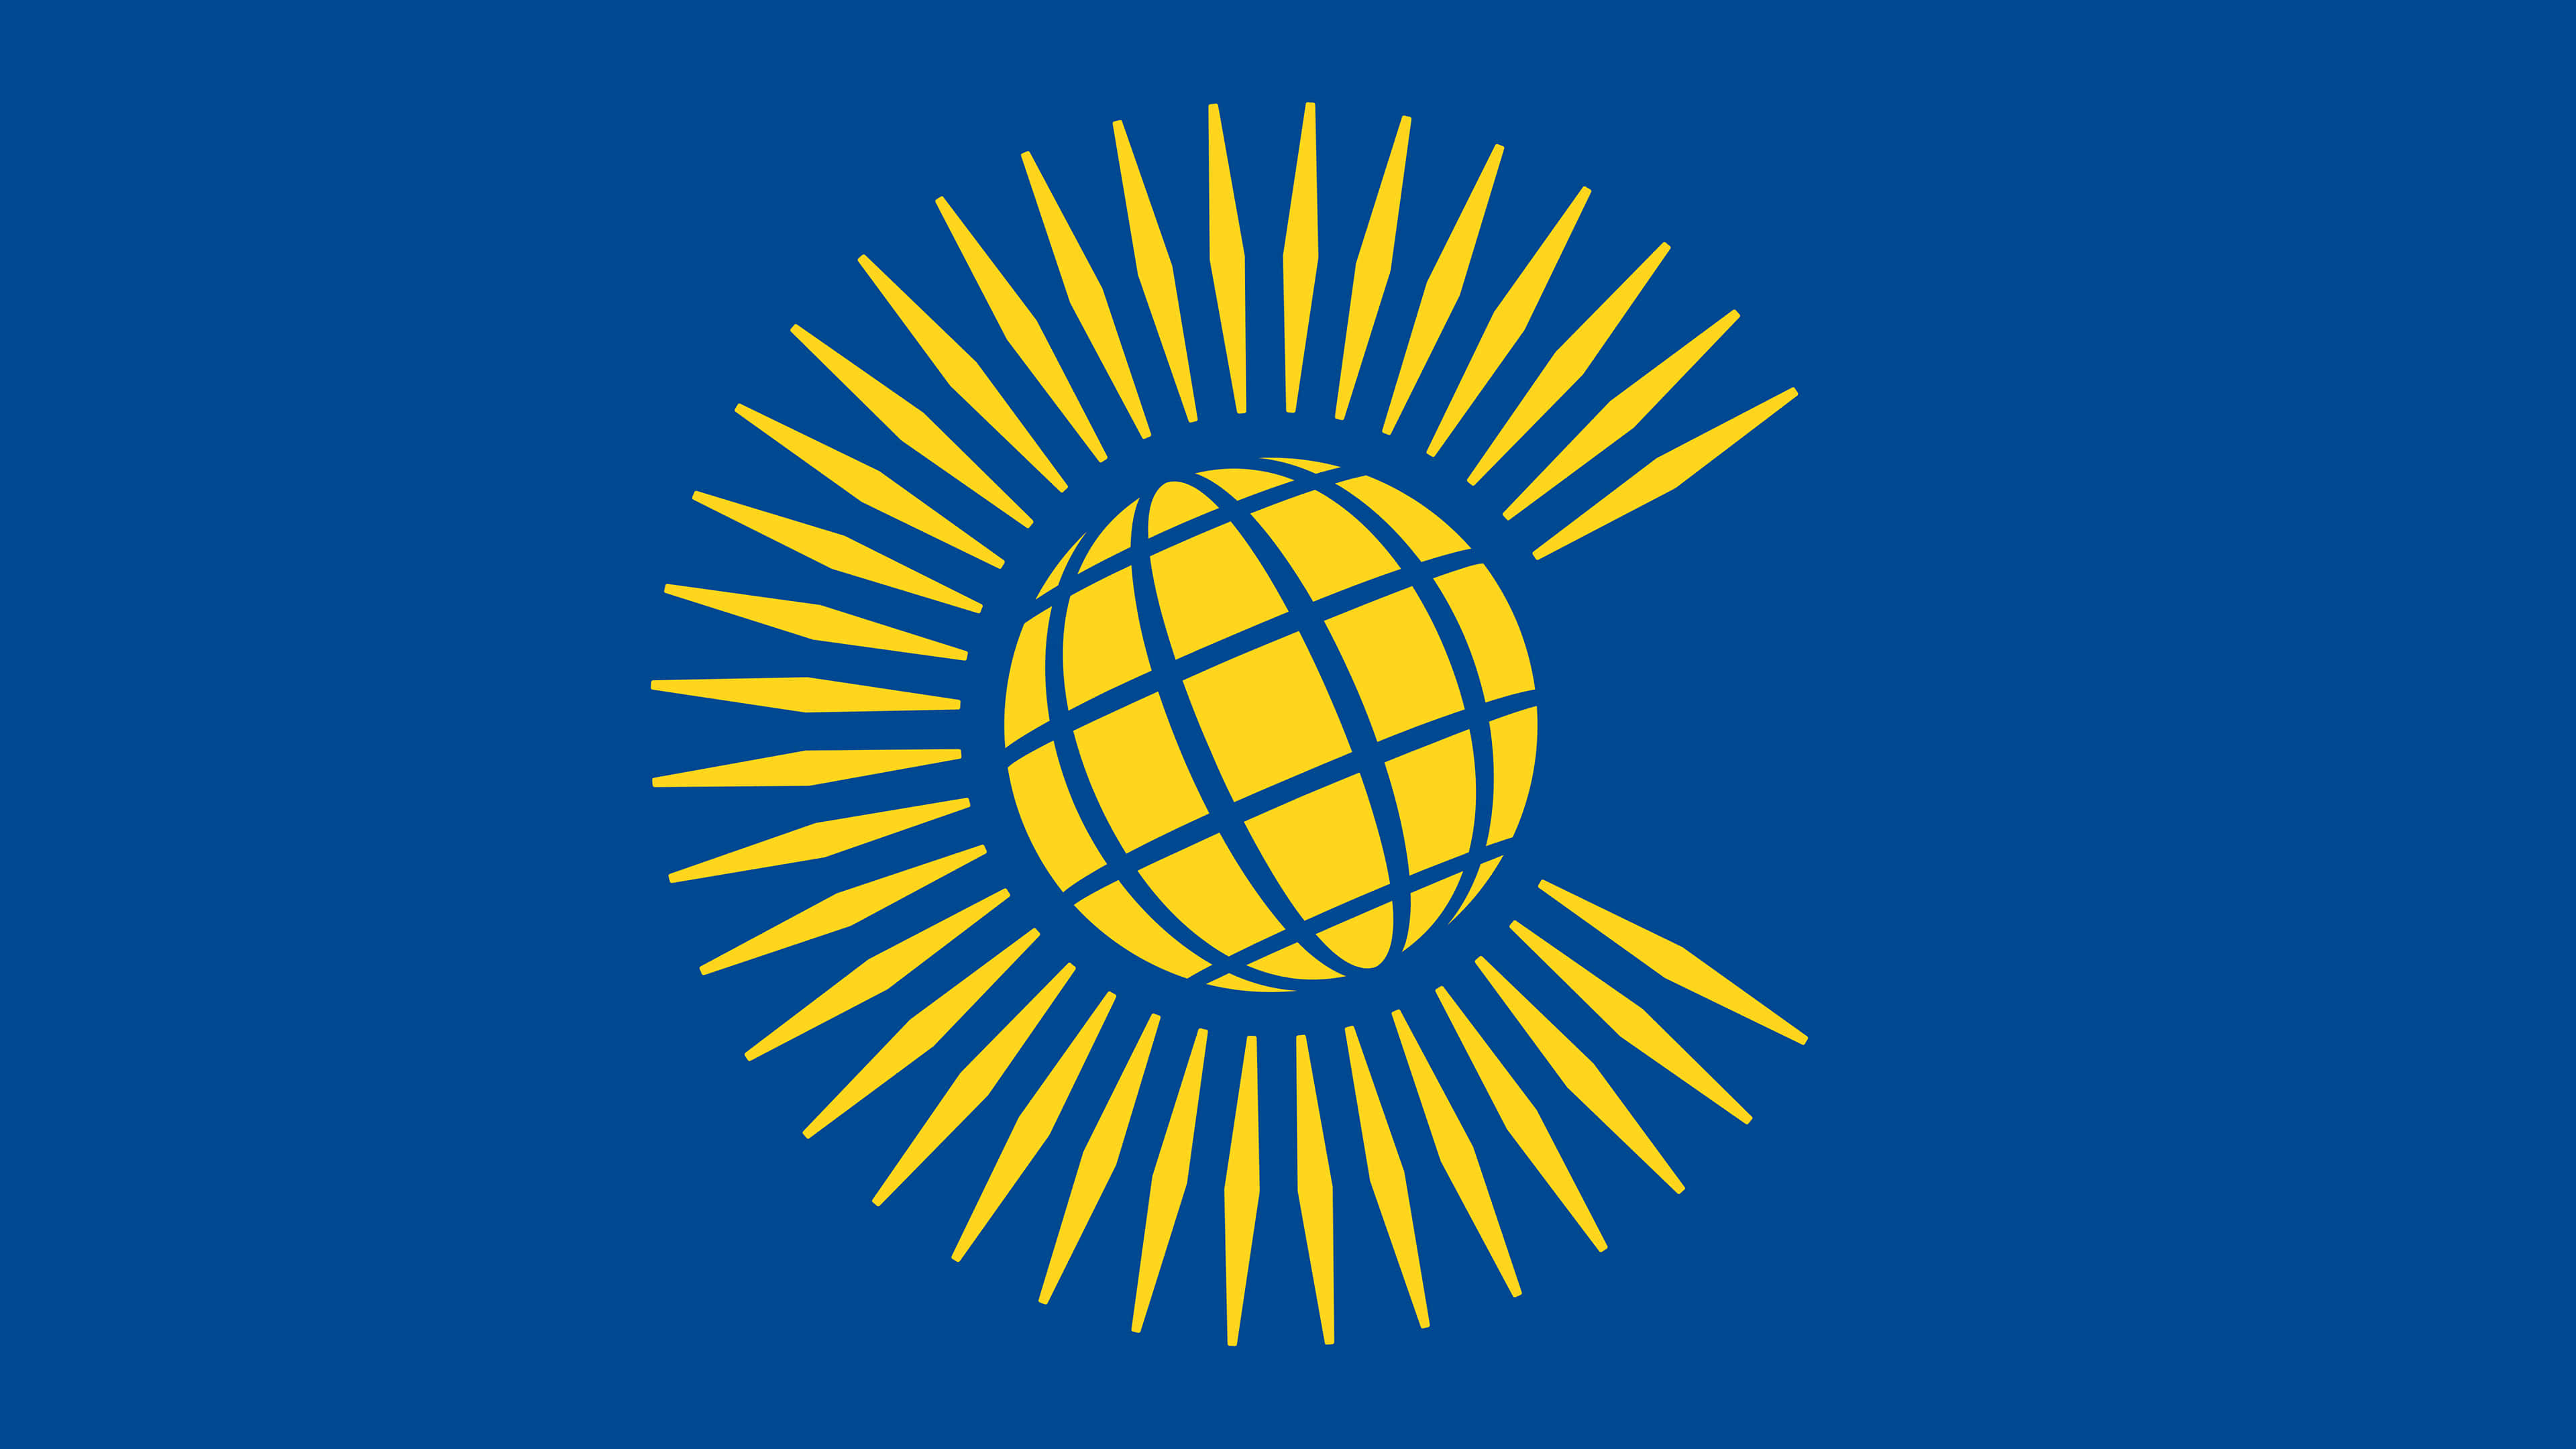 commonwealth flag uhd 4k wallpaper